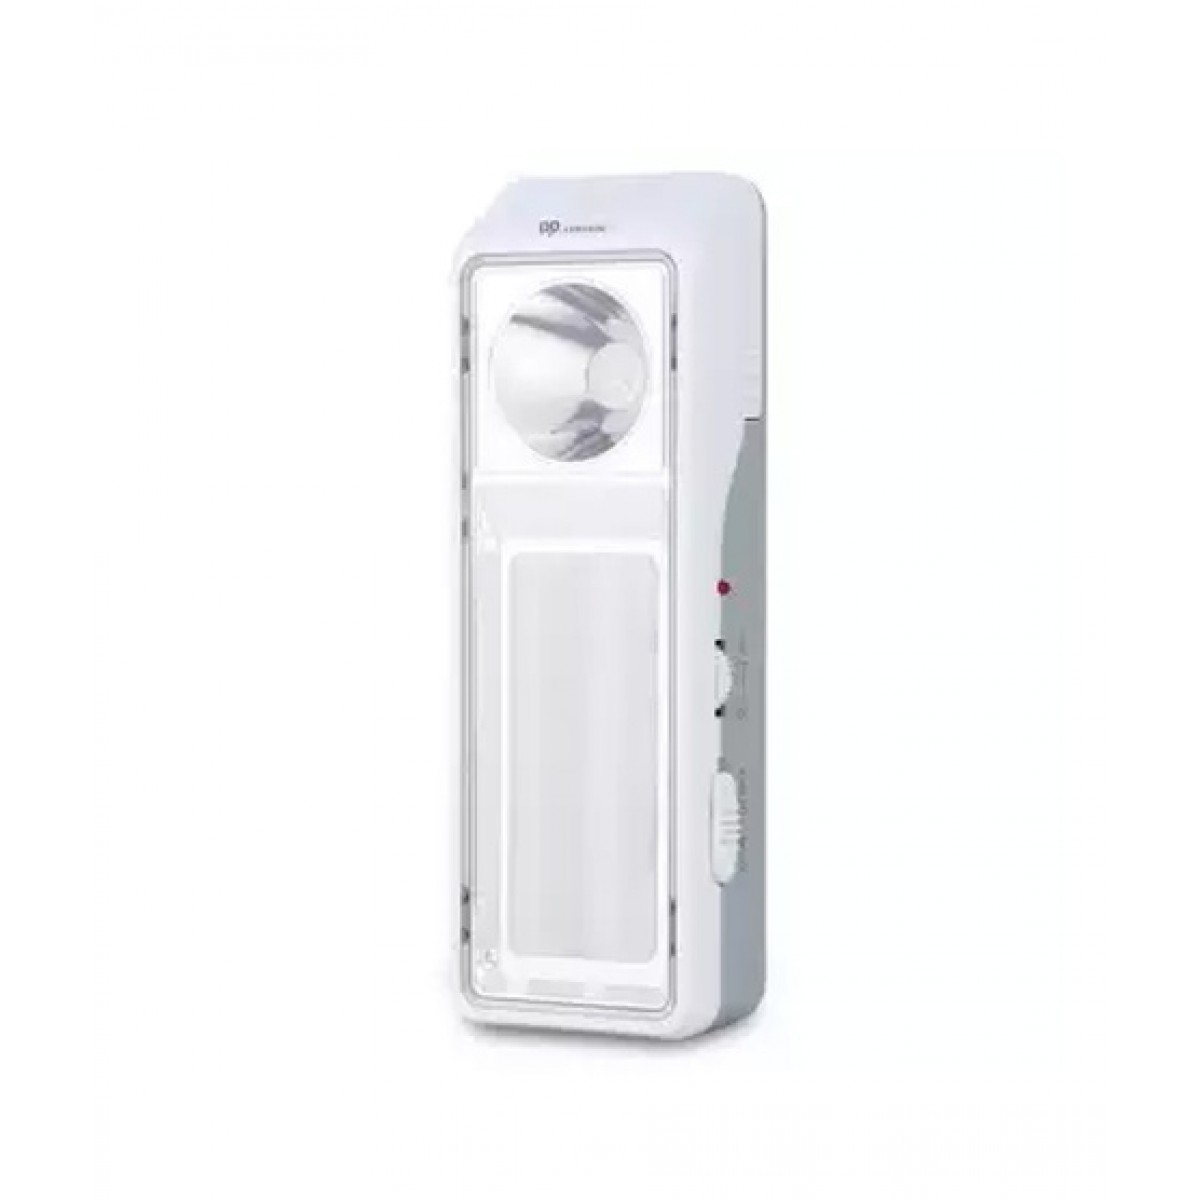 DP LED Emergency Light White (DP-7106)